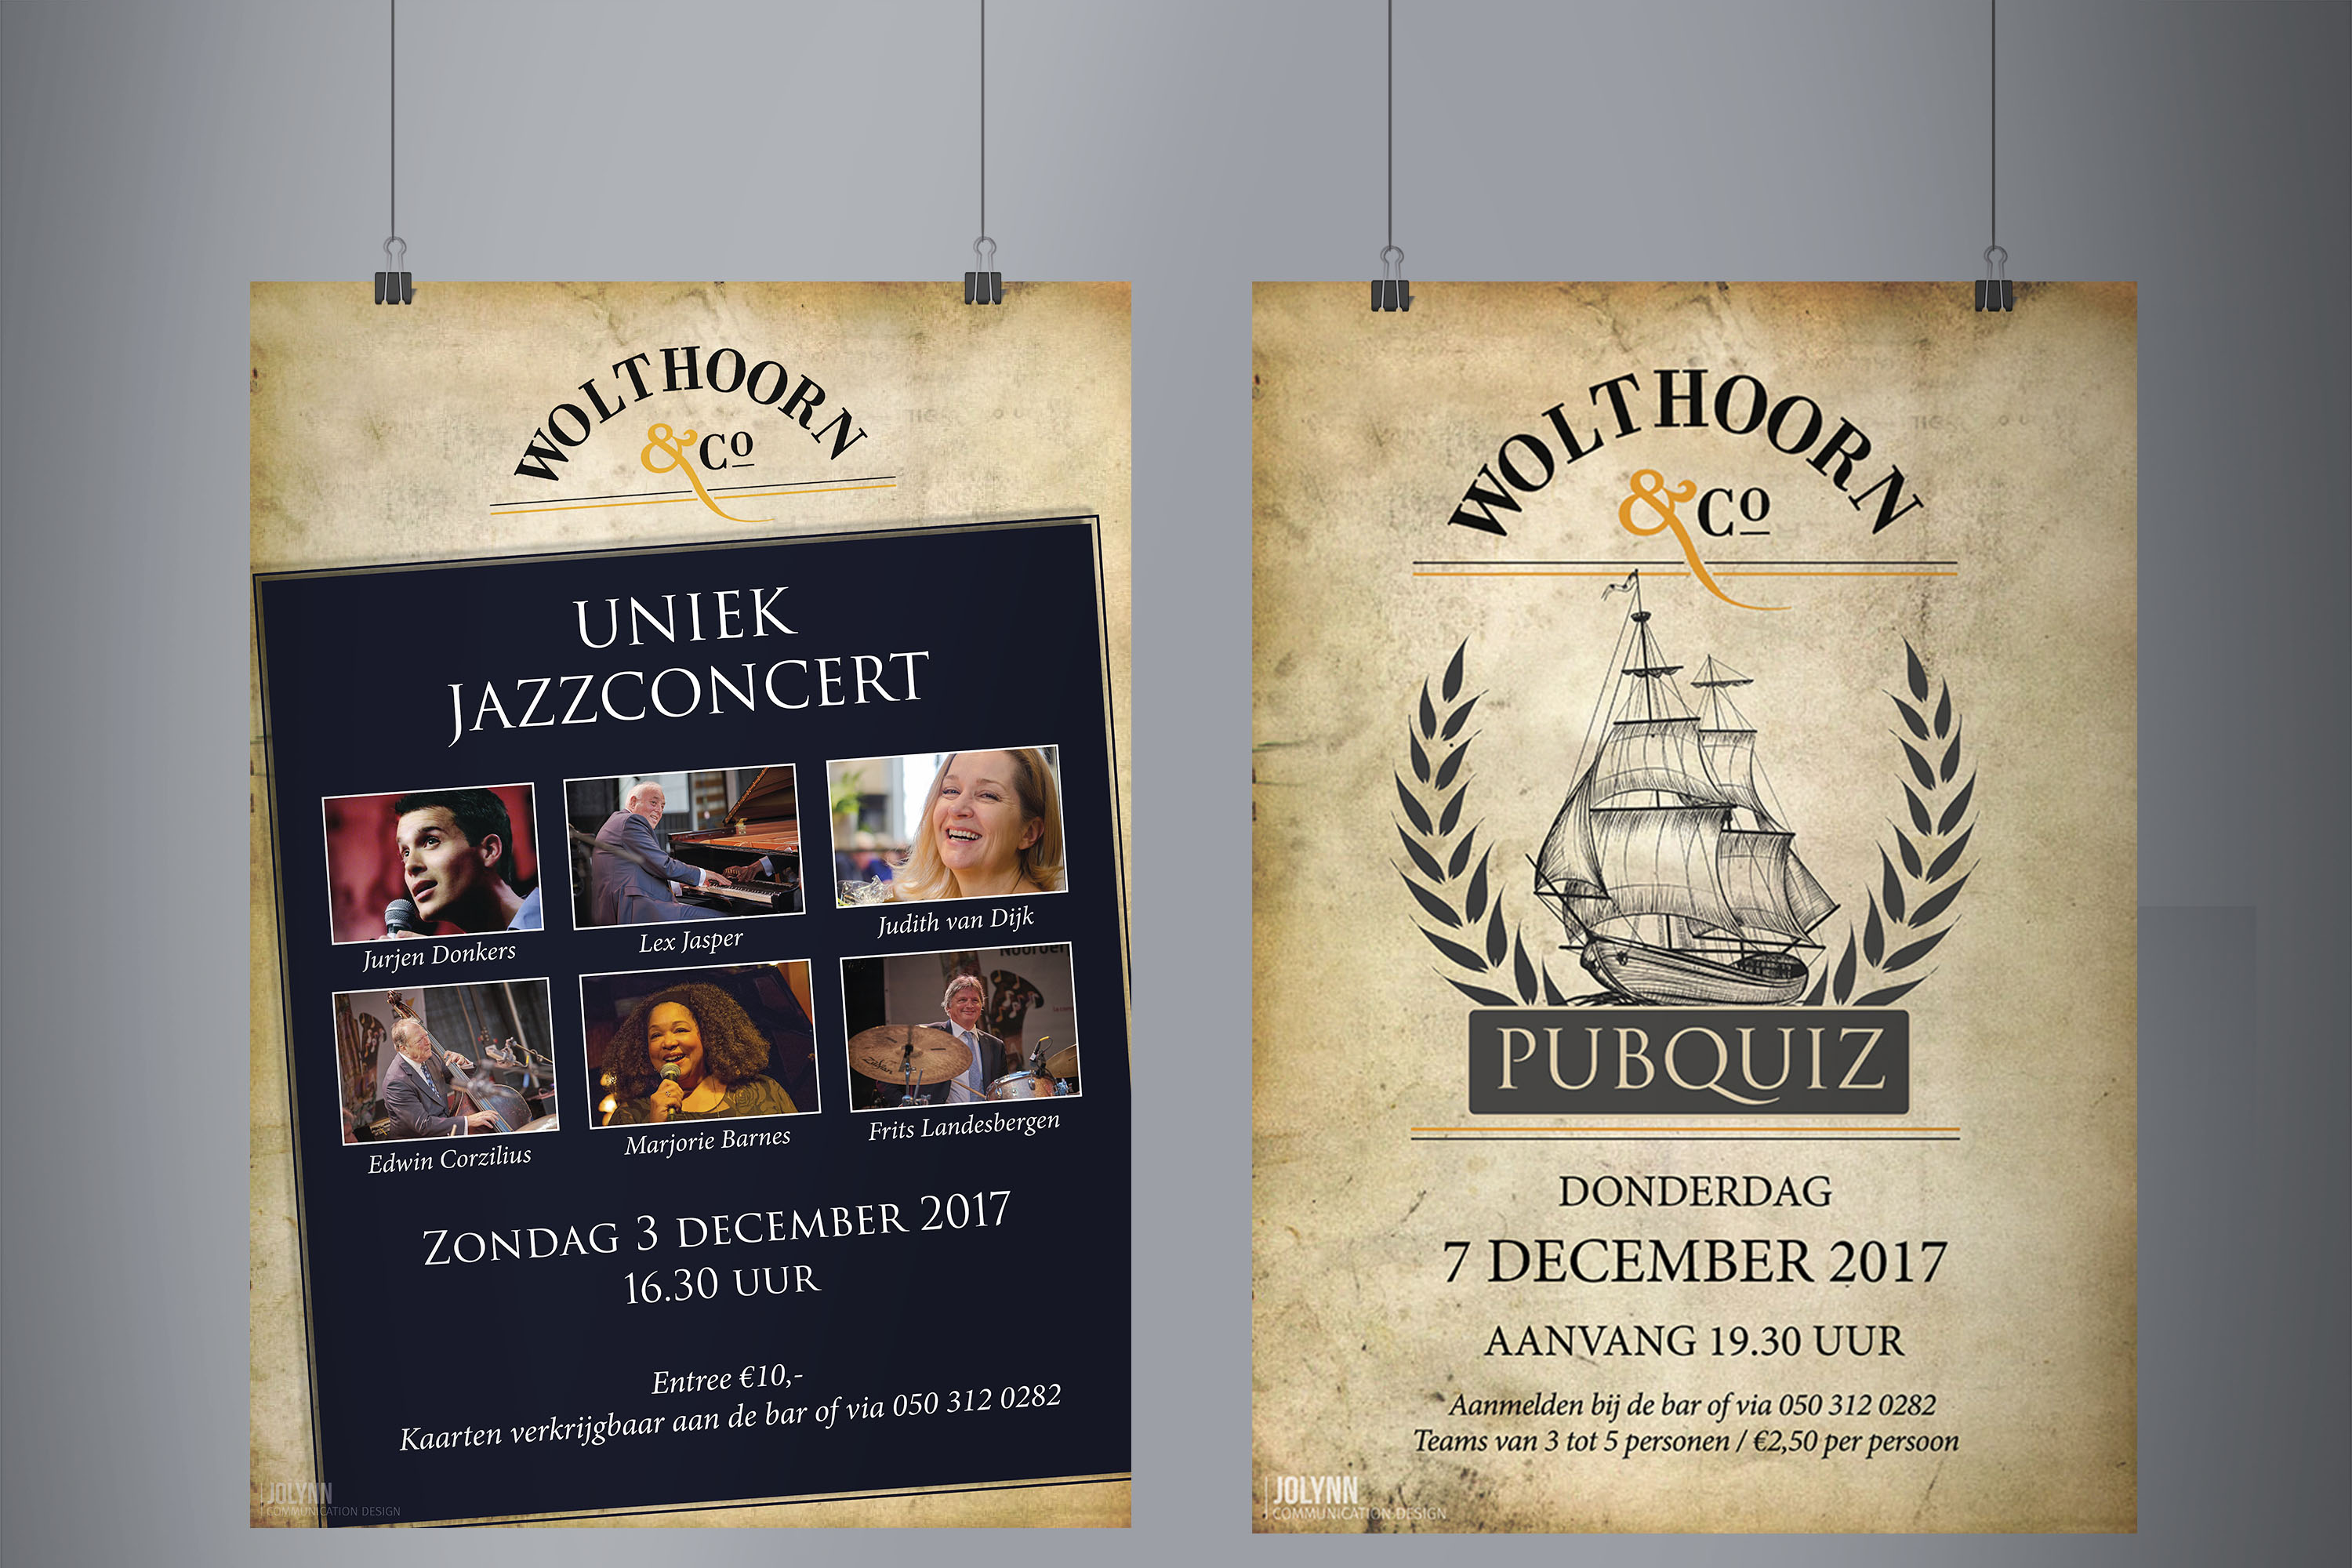 Posters Wolthoorn